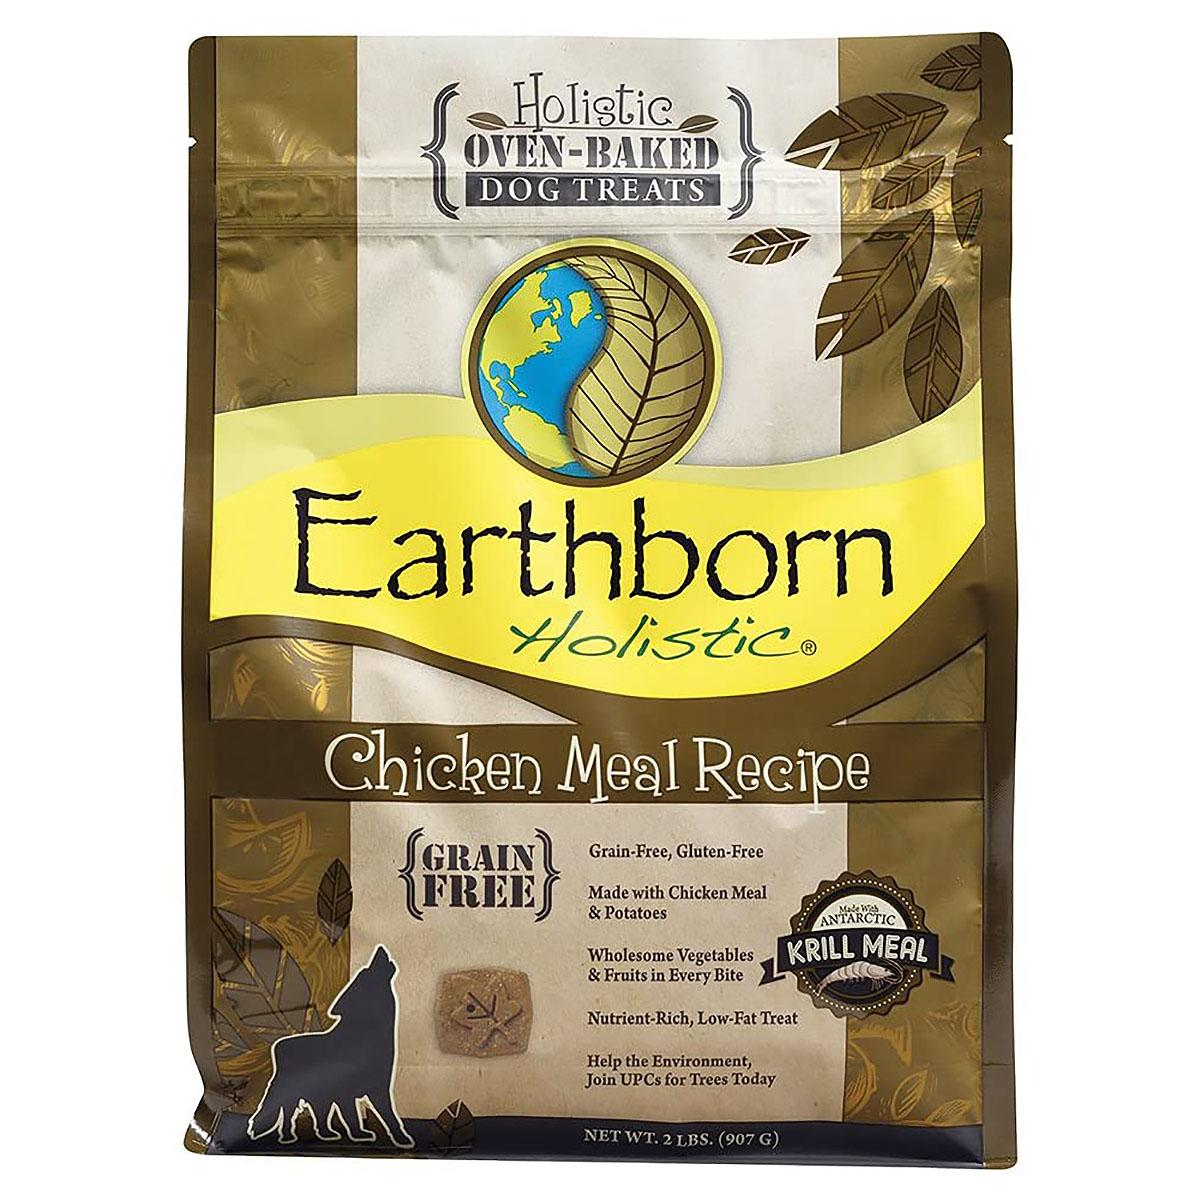 Earthborn Holistic Grain-Free Oven Baked Biscuits Dog Treats - Chicken